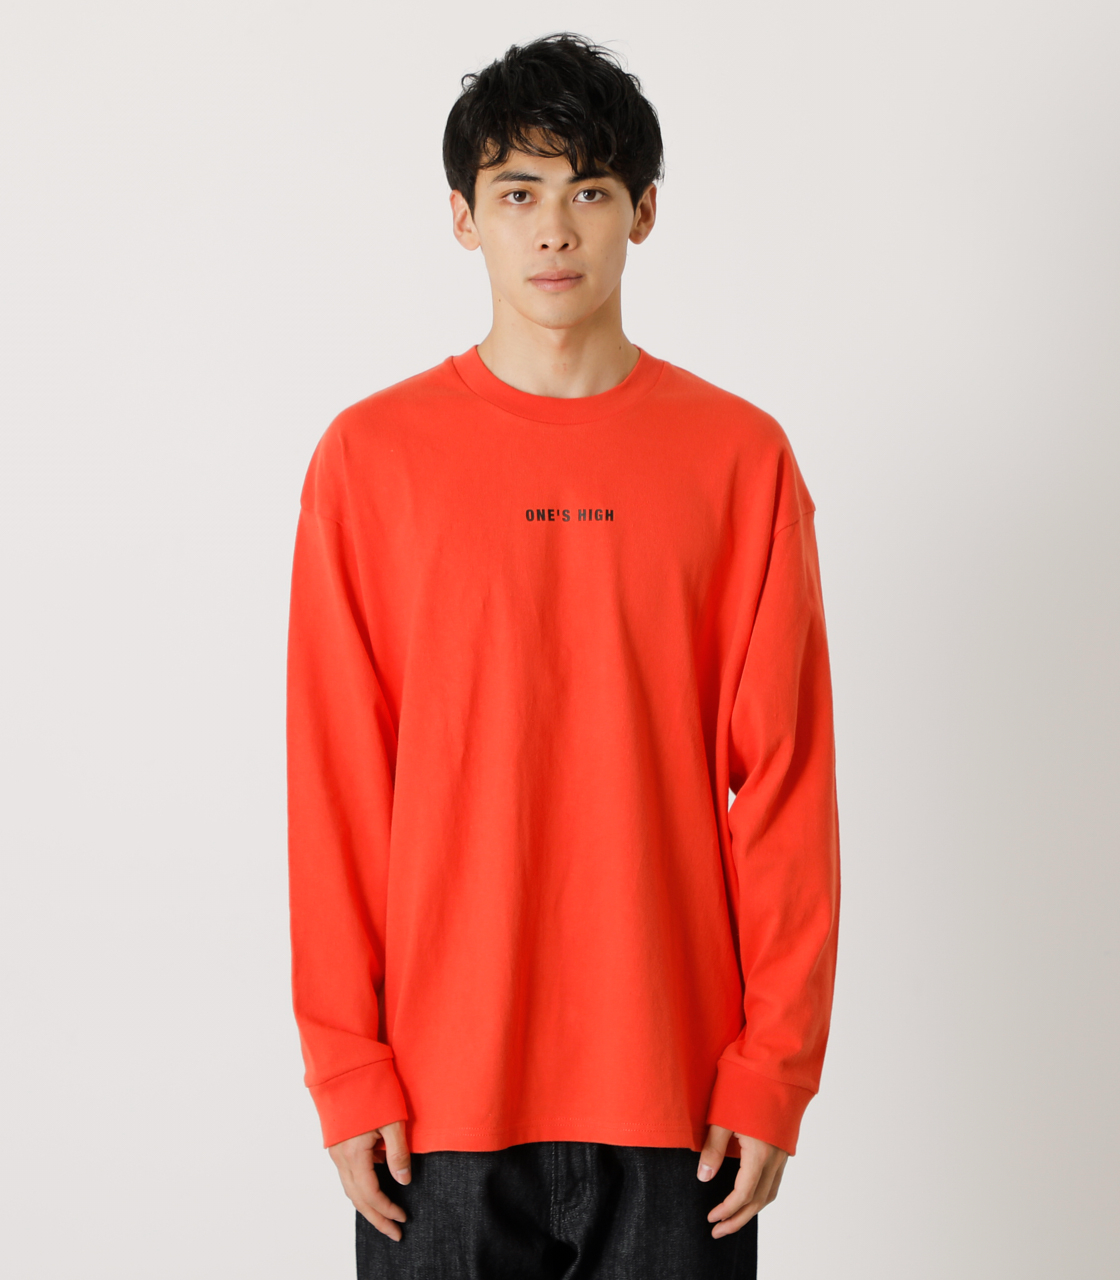 ONE'S HIGH LONG TEE/ワンズハイロングTシャツ 詳細画像 D/ORG 5